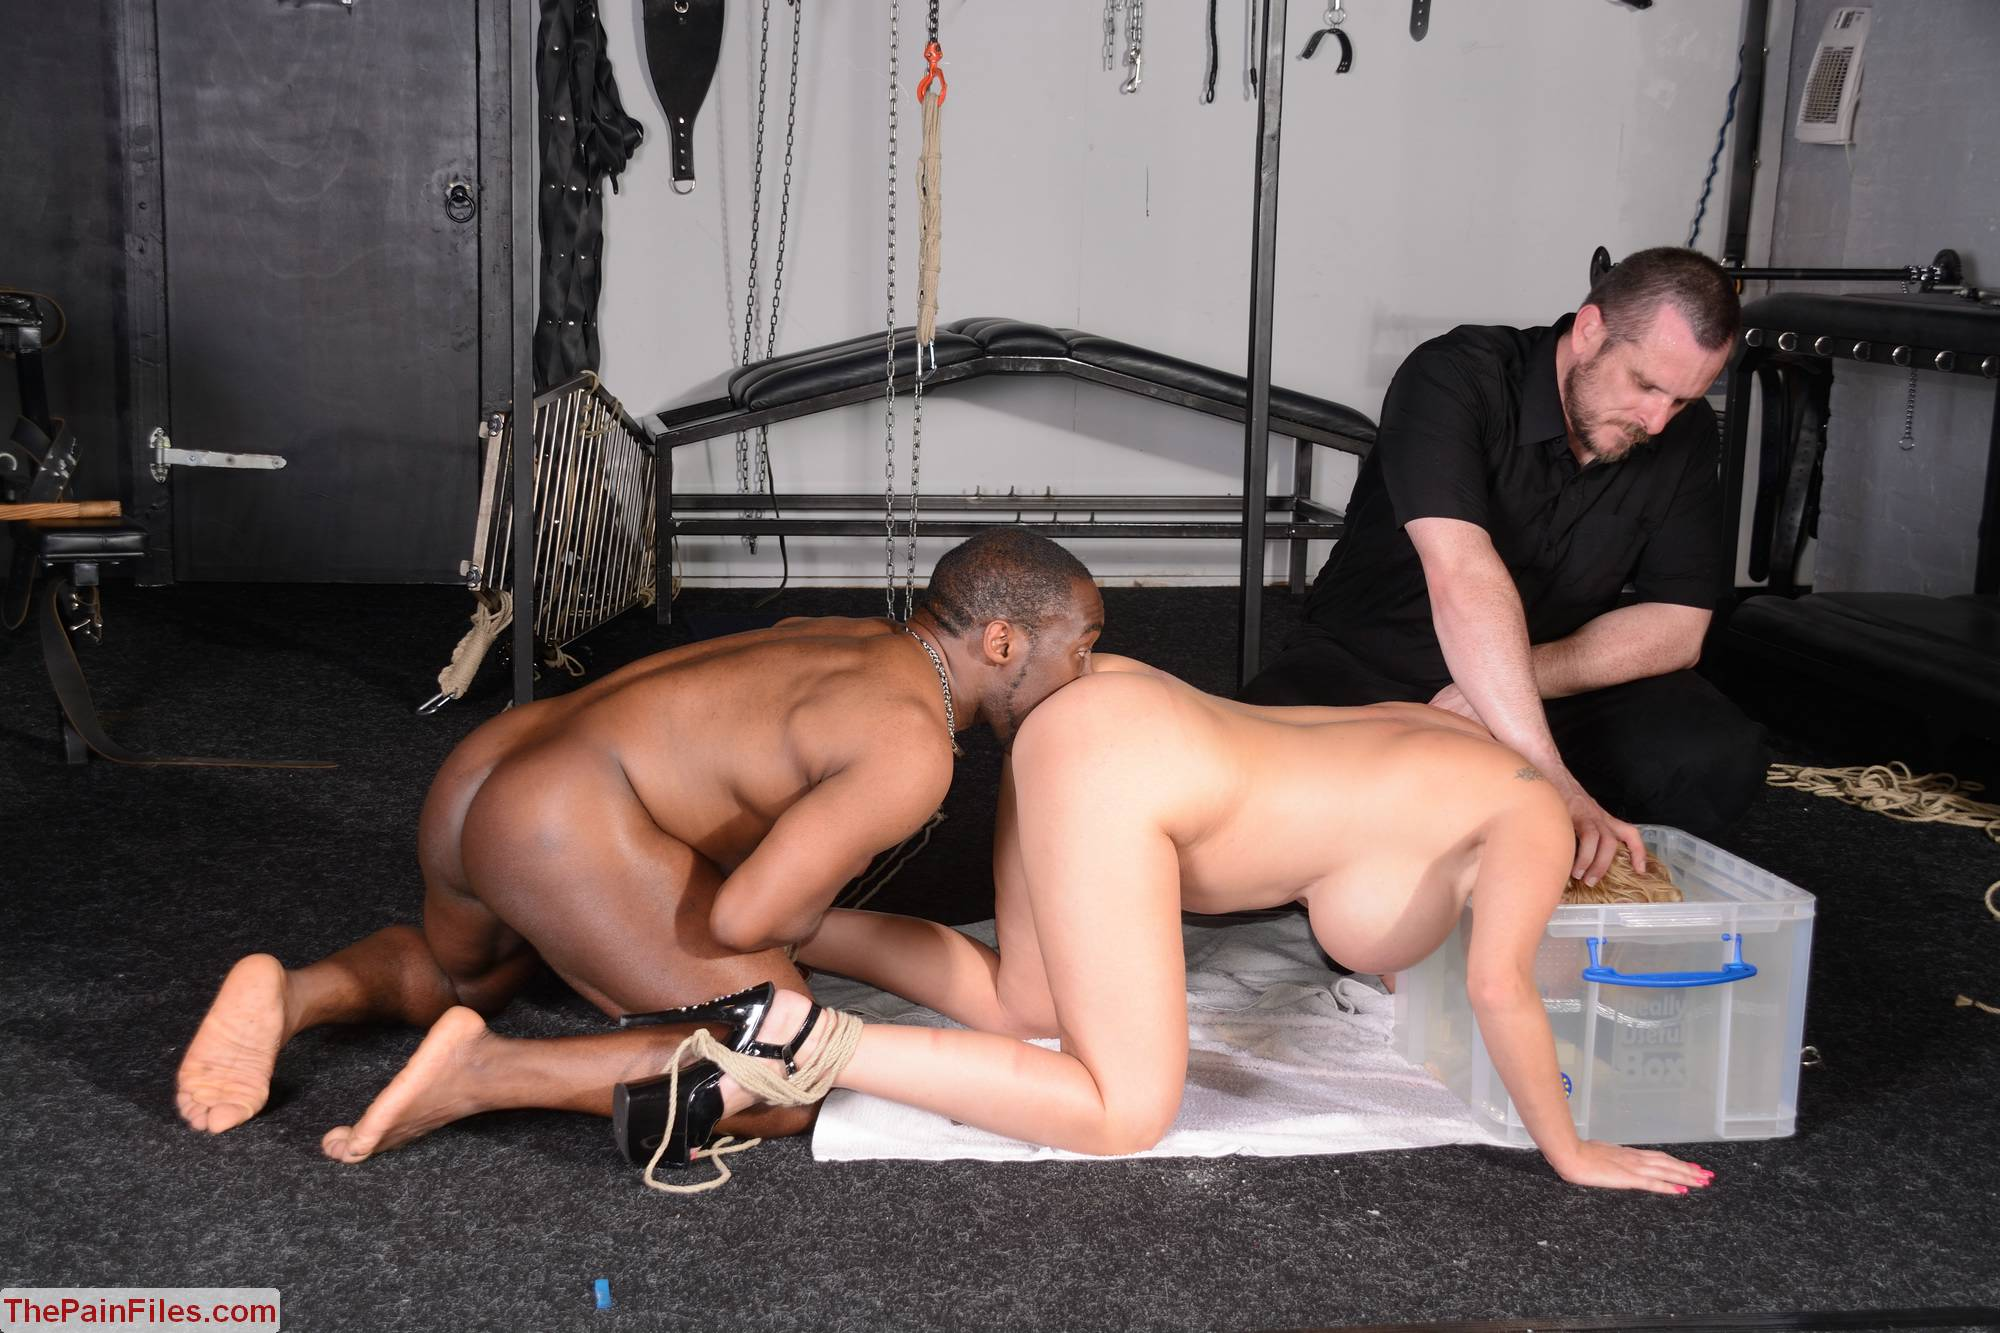 ... Melanie Moons Interracial BDSM